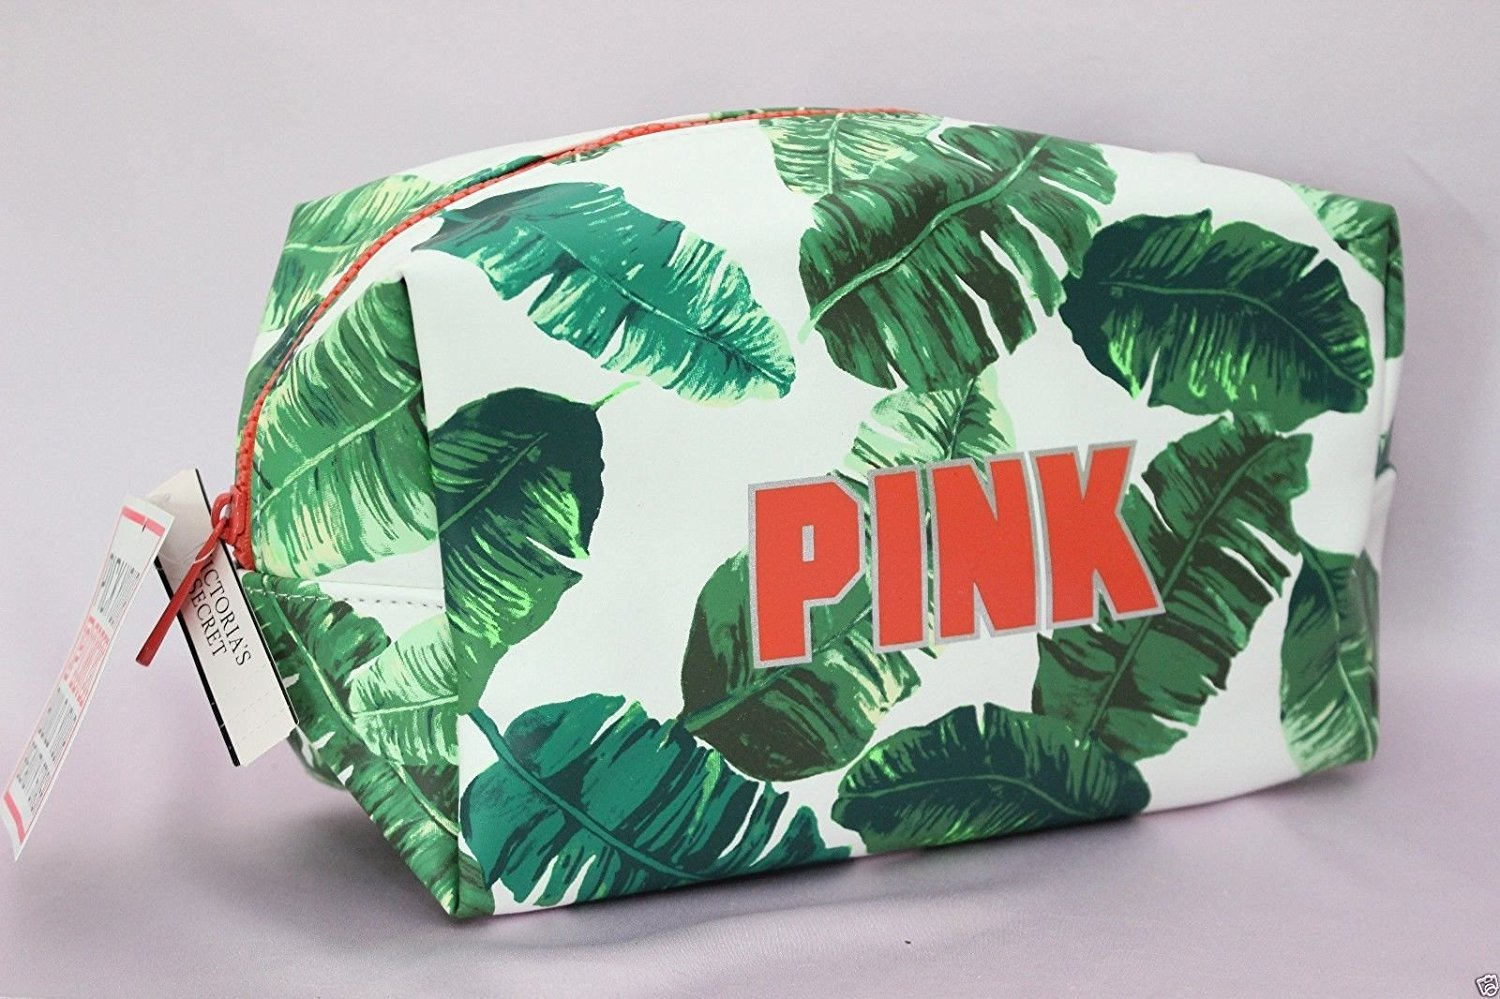 Victoria's Secret PINK Cosmetics Makeup Bag Palm Fern Leaf Print